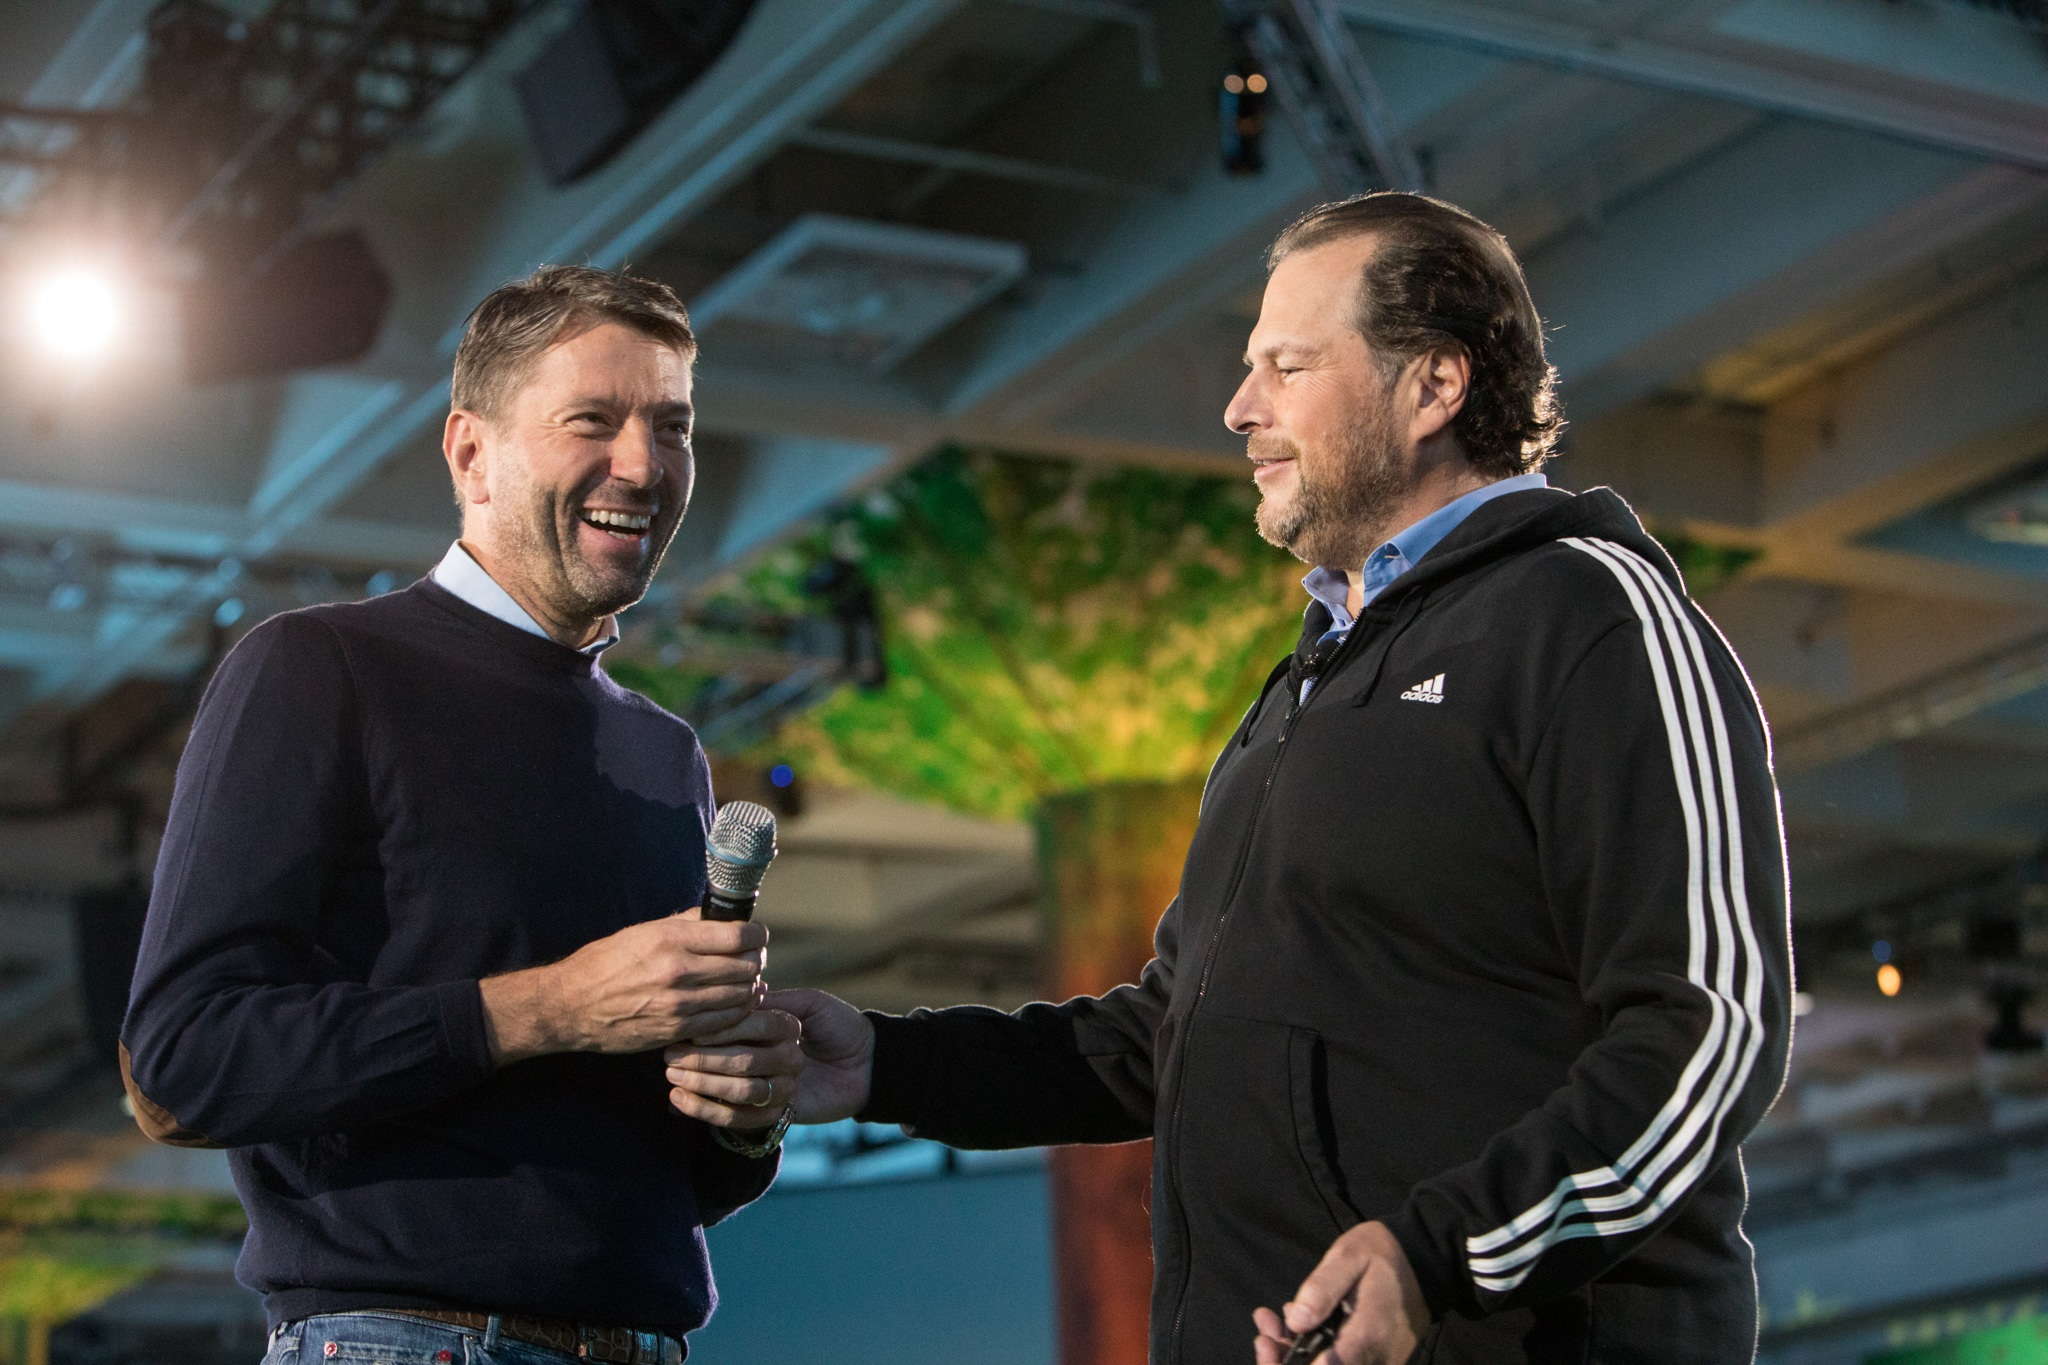 Salesforce CEO Marc Benioff & Adidas CEO Kasper Rorsted